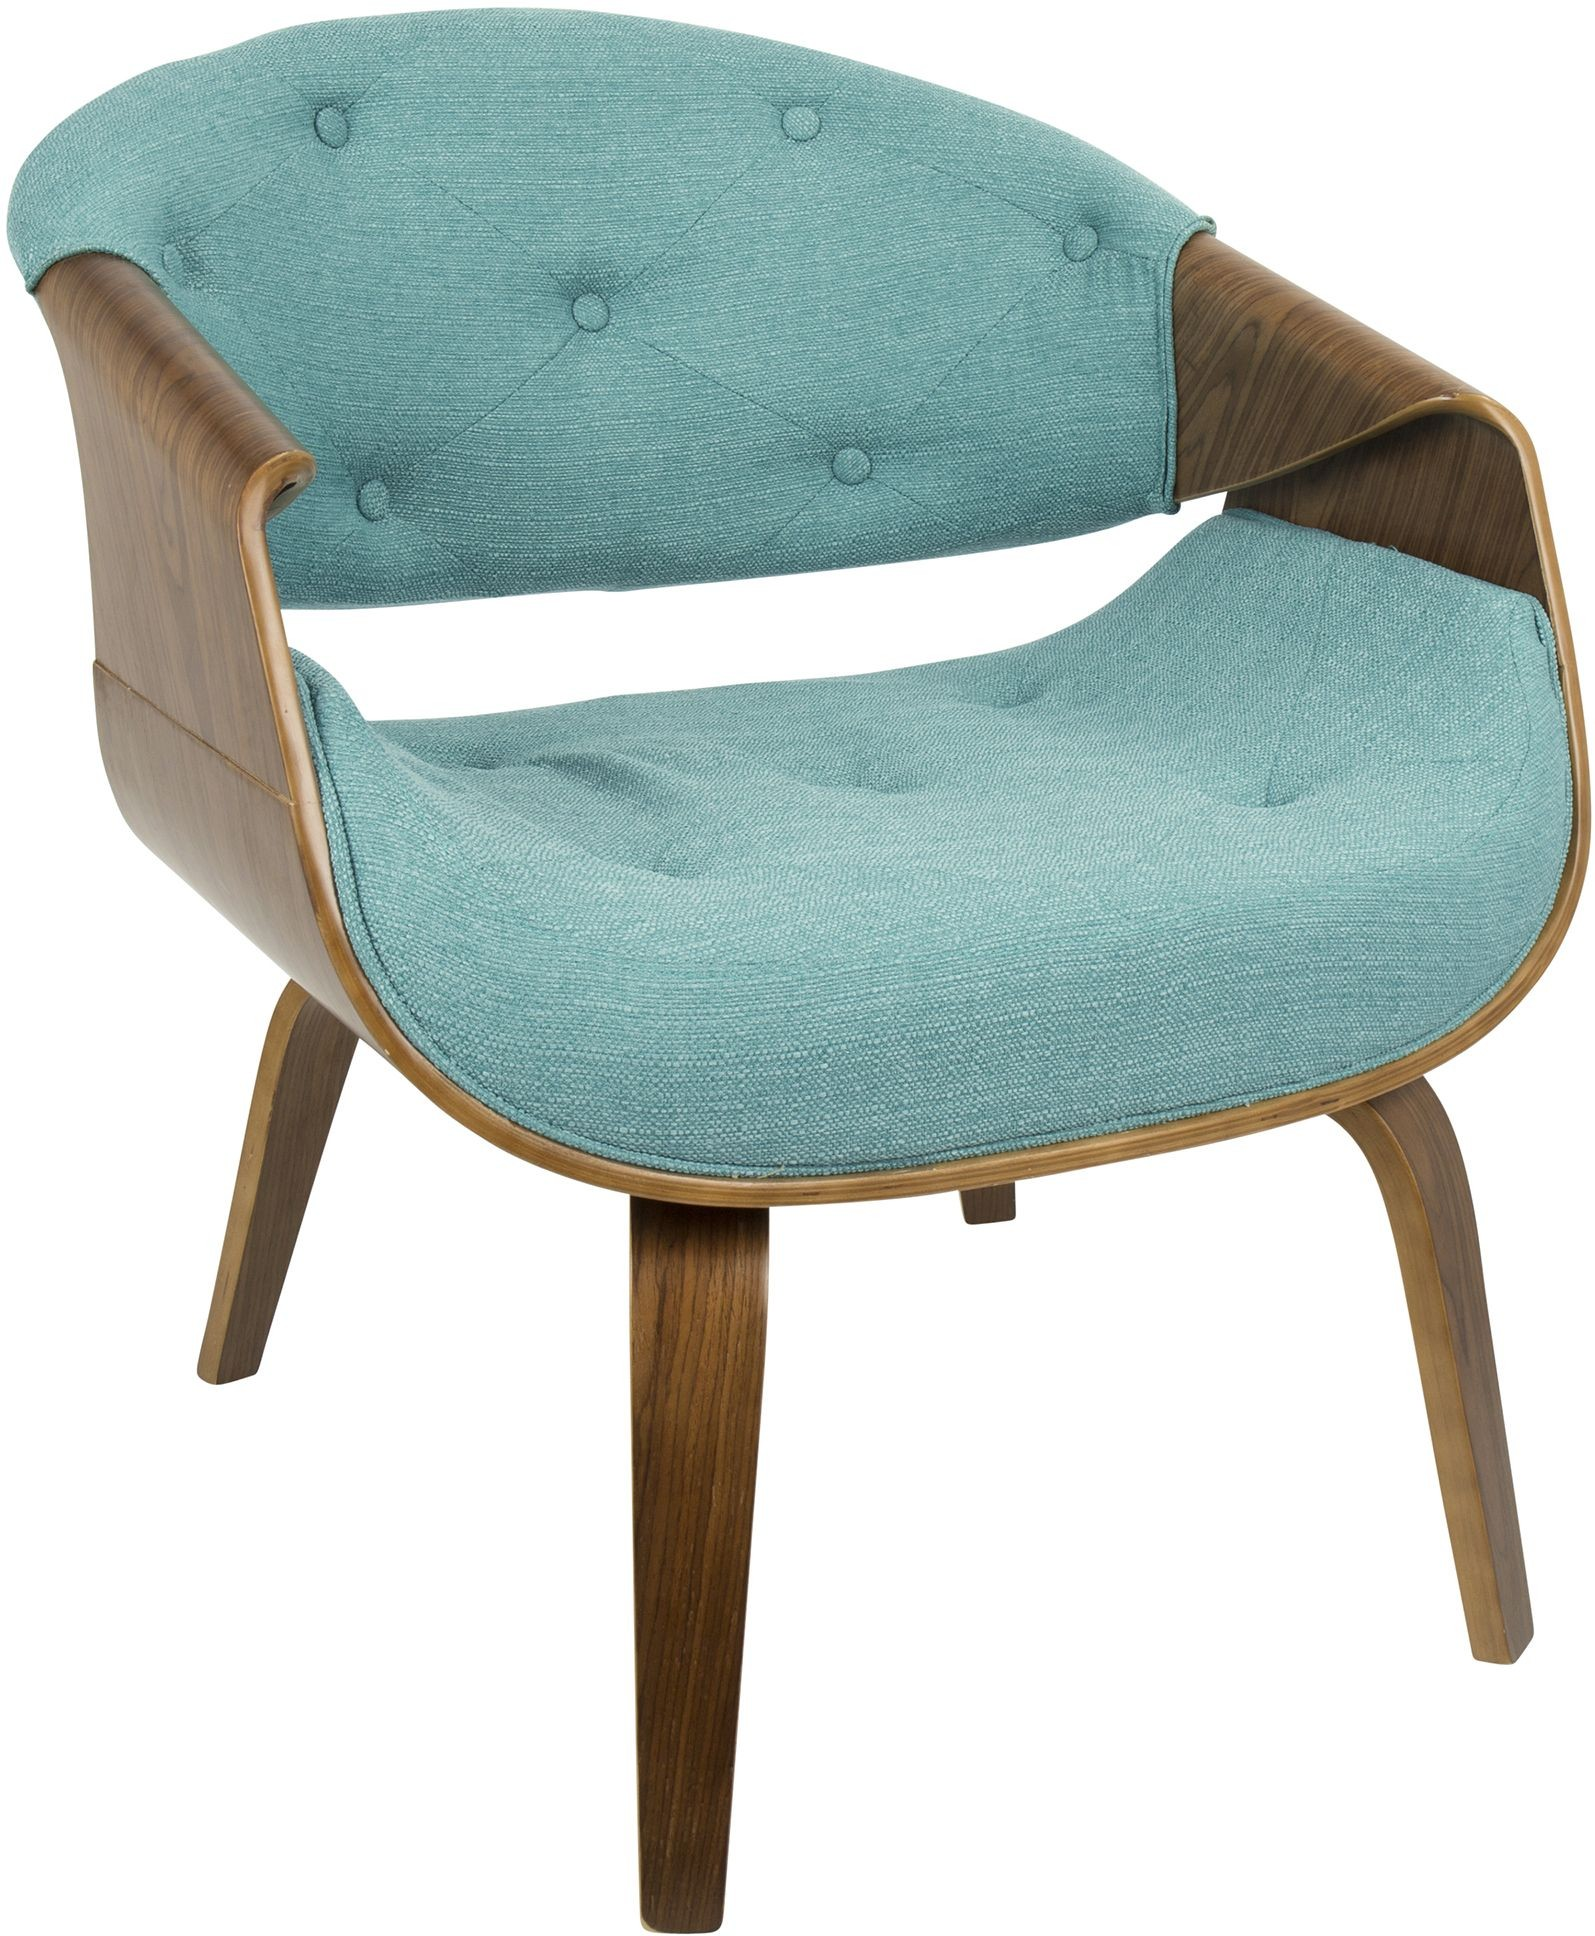 teal tufted chair bamboo office mat curvo walnut and accent from lumisource